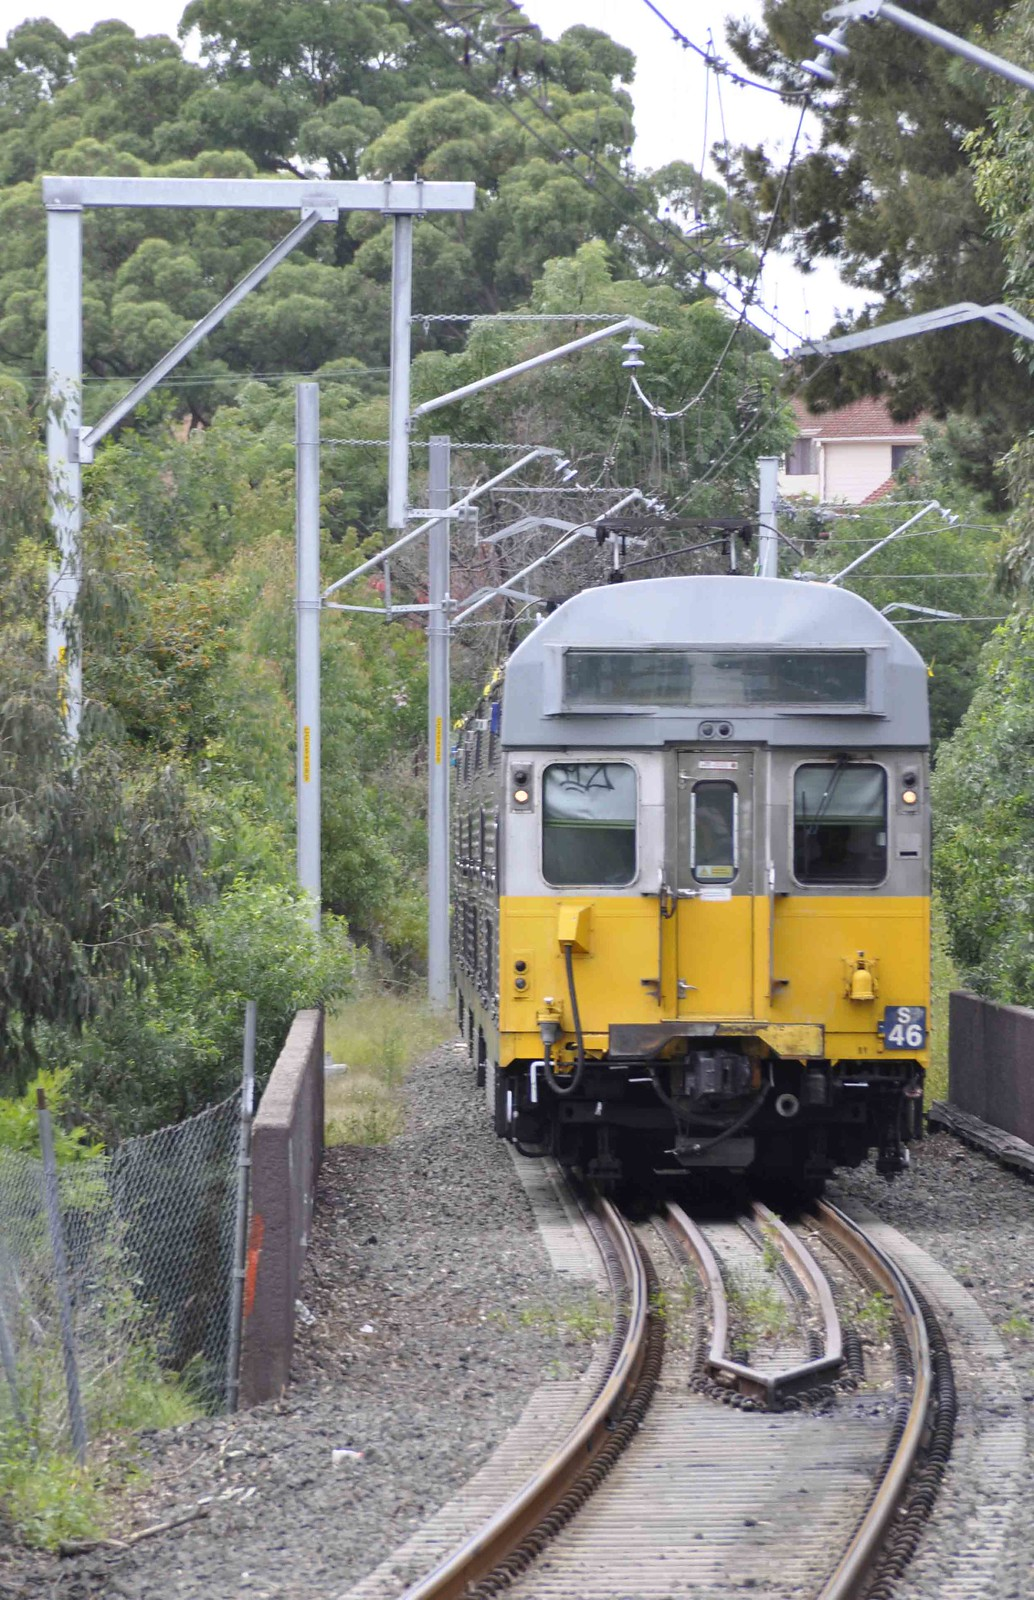 Sydney Trains - T6 The Carlingford Line - S-set S46 returns to Dundas from Telopea and Carlingford by John Cowper